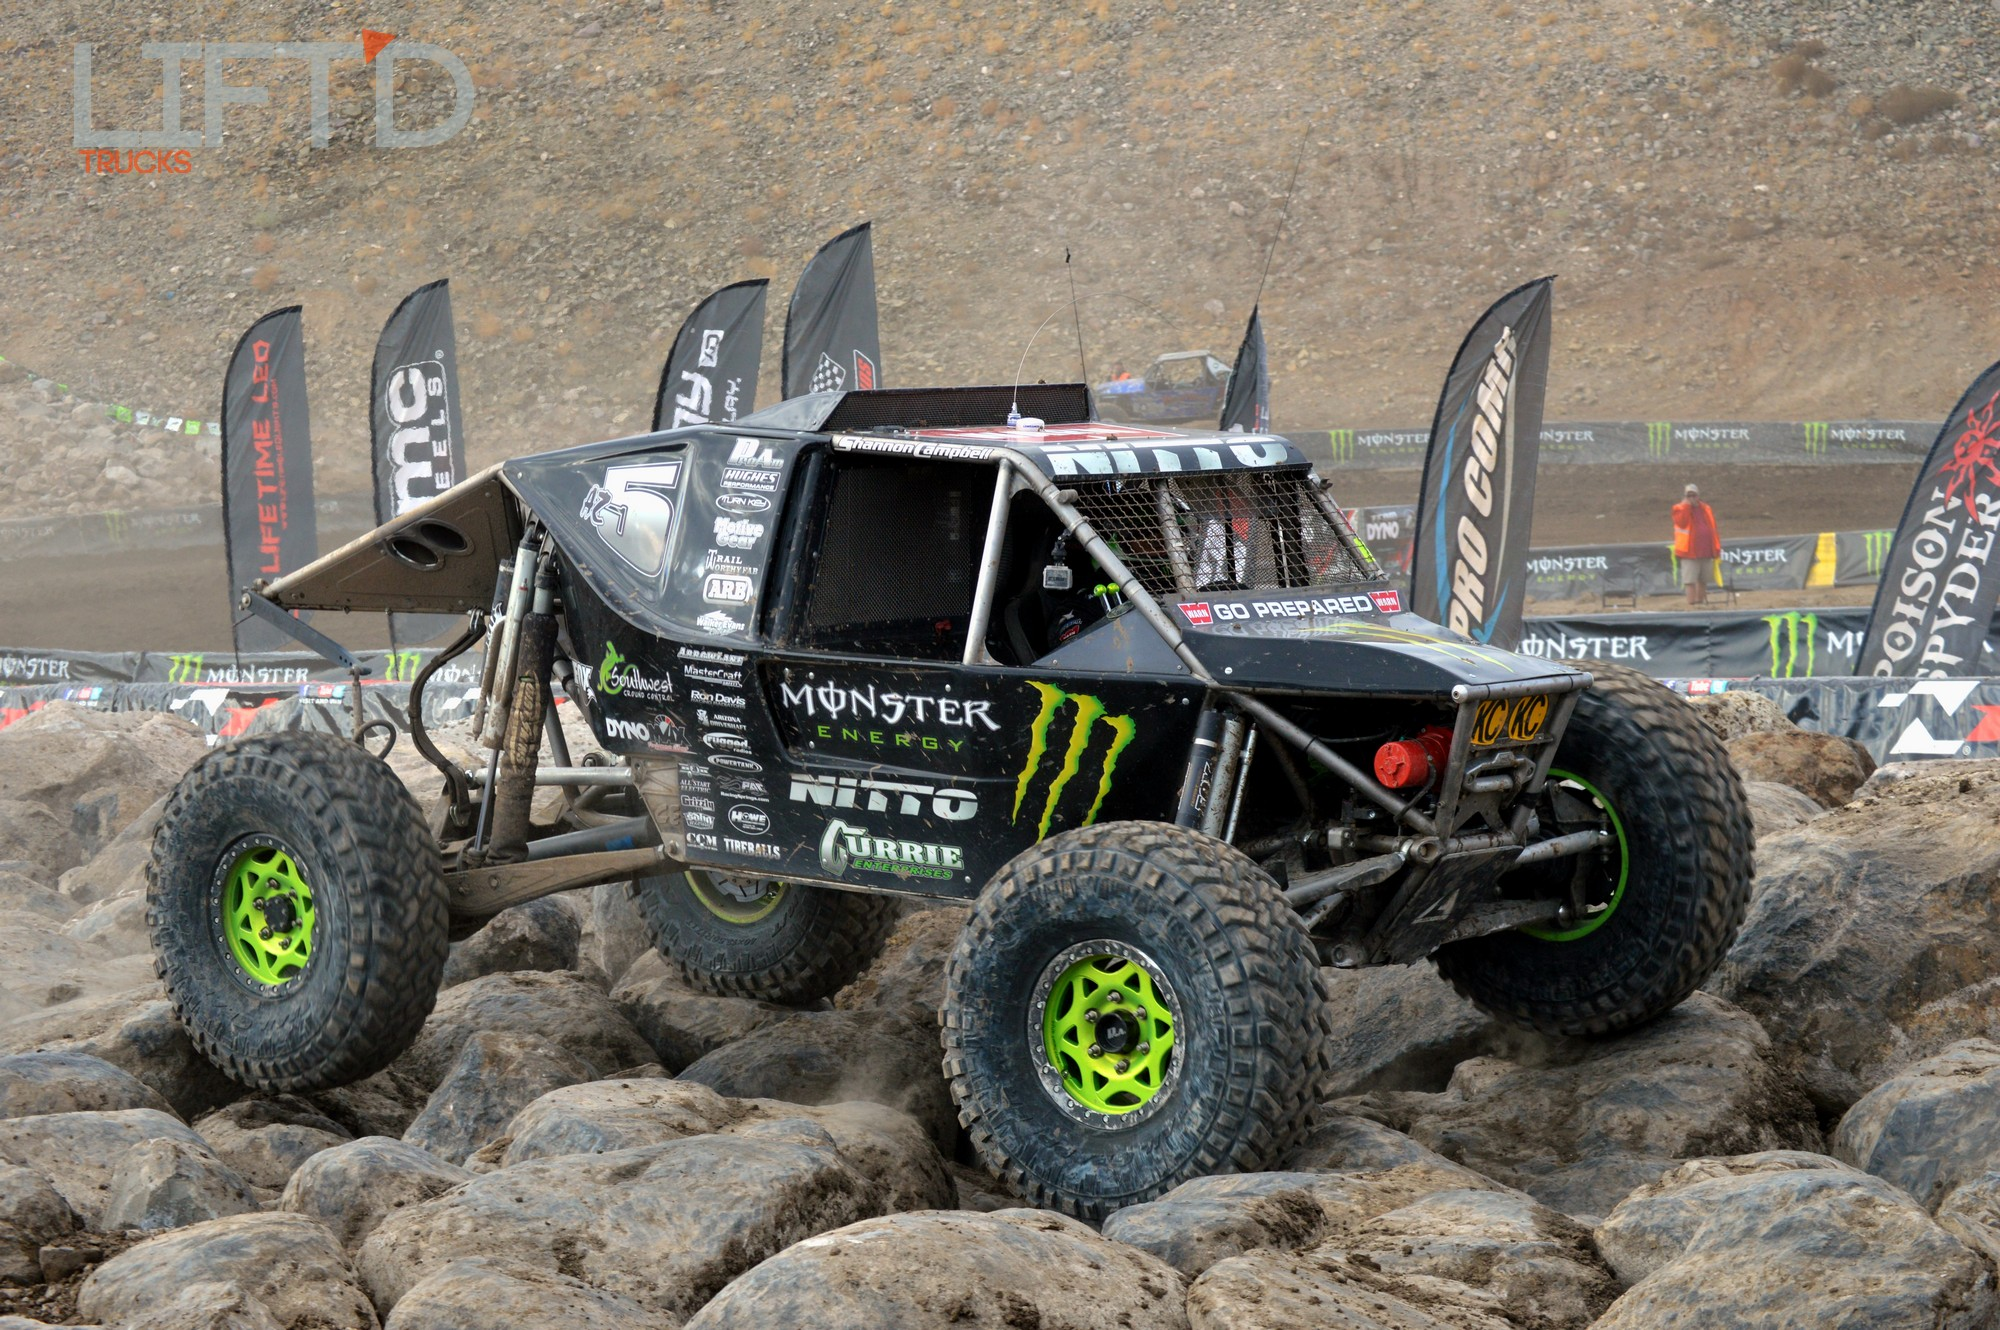 Shannon Campbell in his custom Monster Energy Machine Photo:liftdtrucks